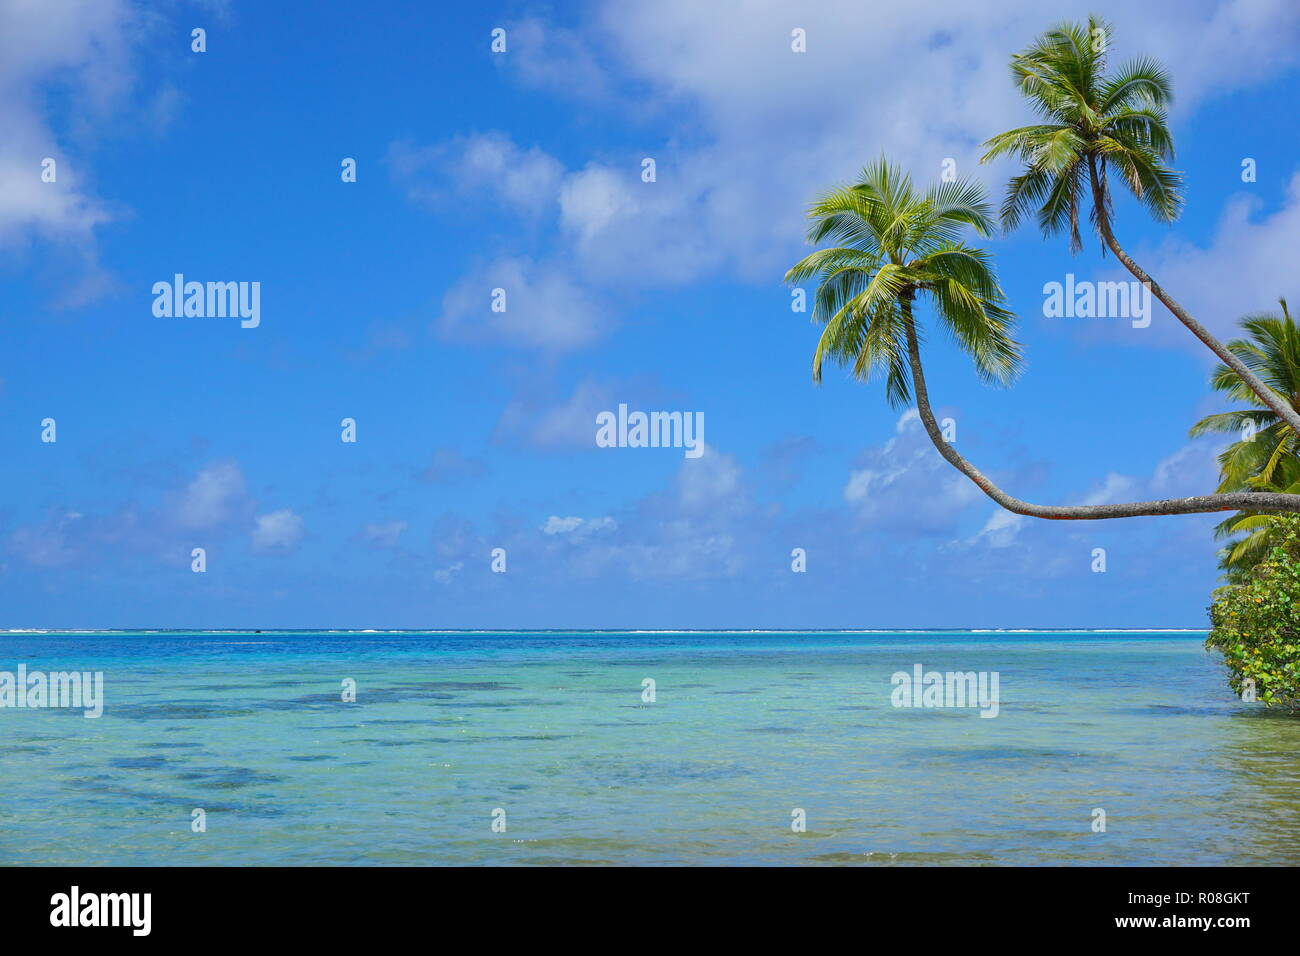 Tropical seascape two coconut palm trees lean over a lagoon with cloudy blue sky and sea horizon, French Polynesia, Huahine, south Pacific ocean - Stock Image